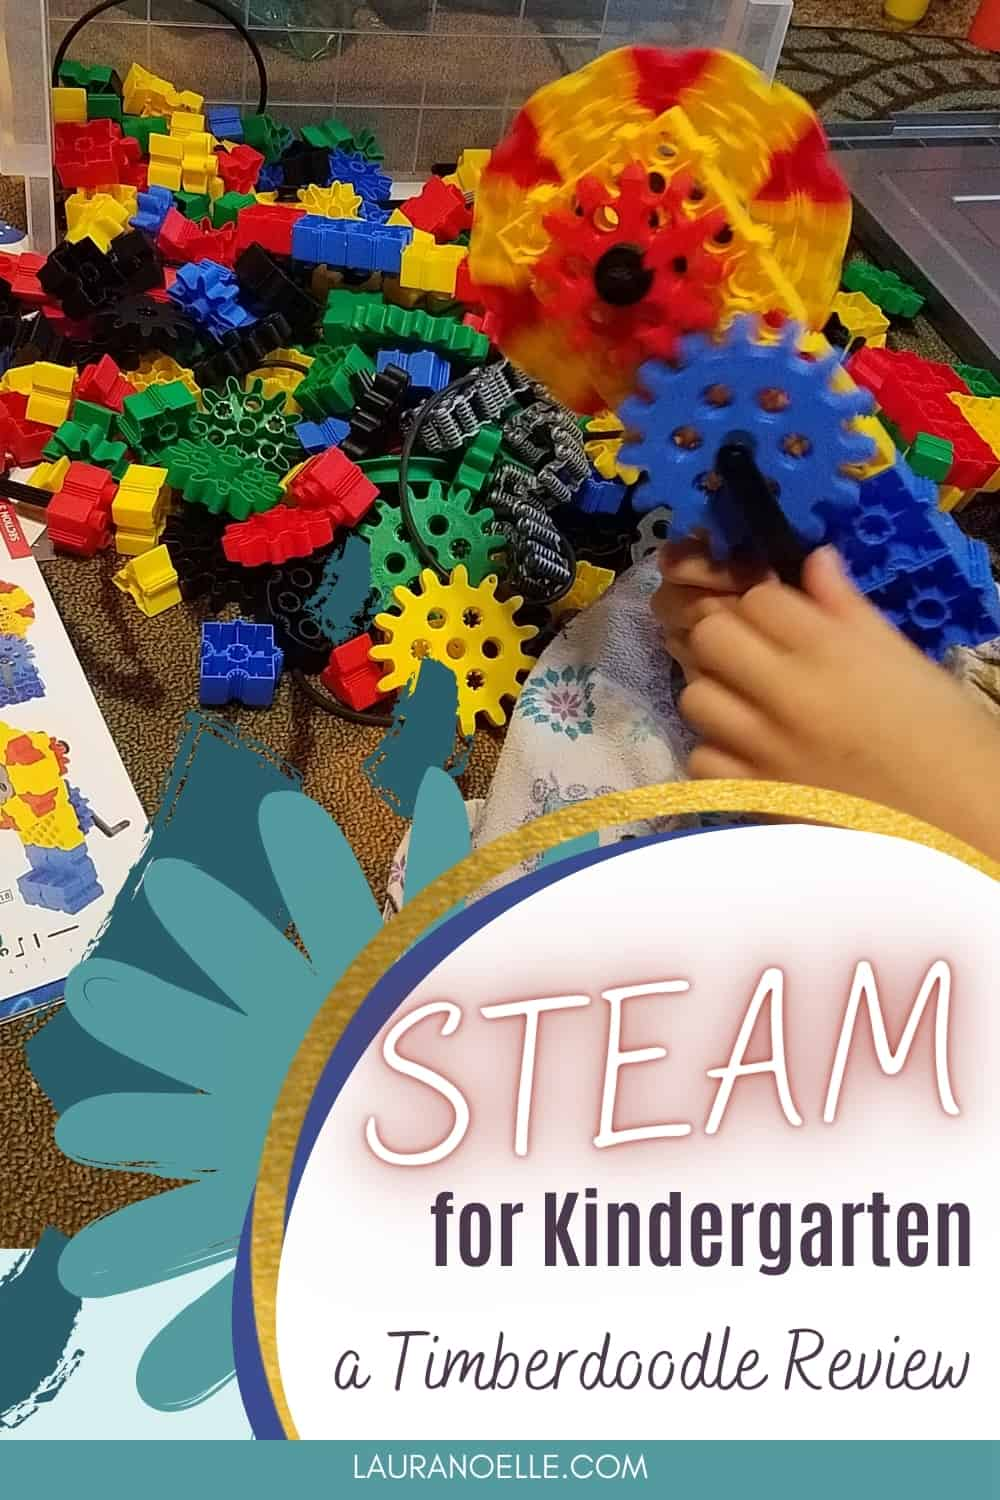 STEAM (science, technology, engineering, art, math) is a movement that's swept education in recent years, and here's what we thought of Timberdoodle's Kindergarten Kit.